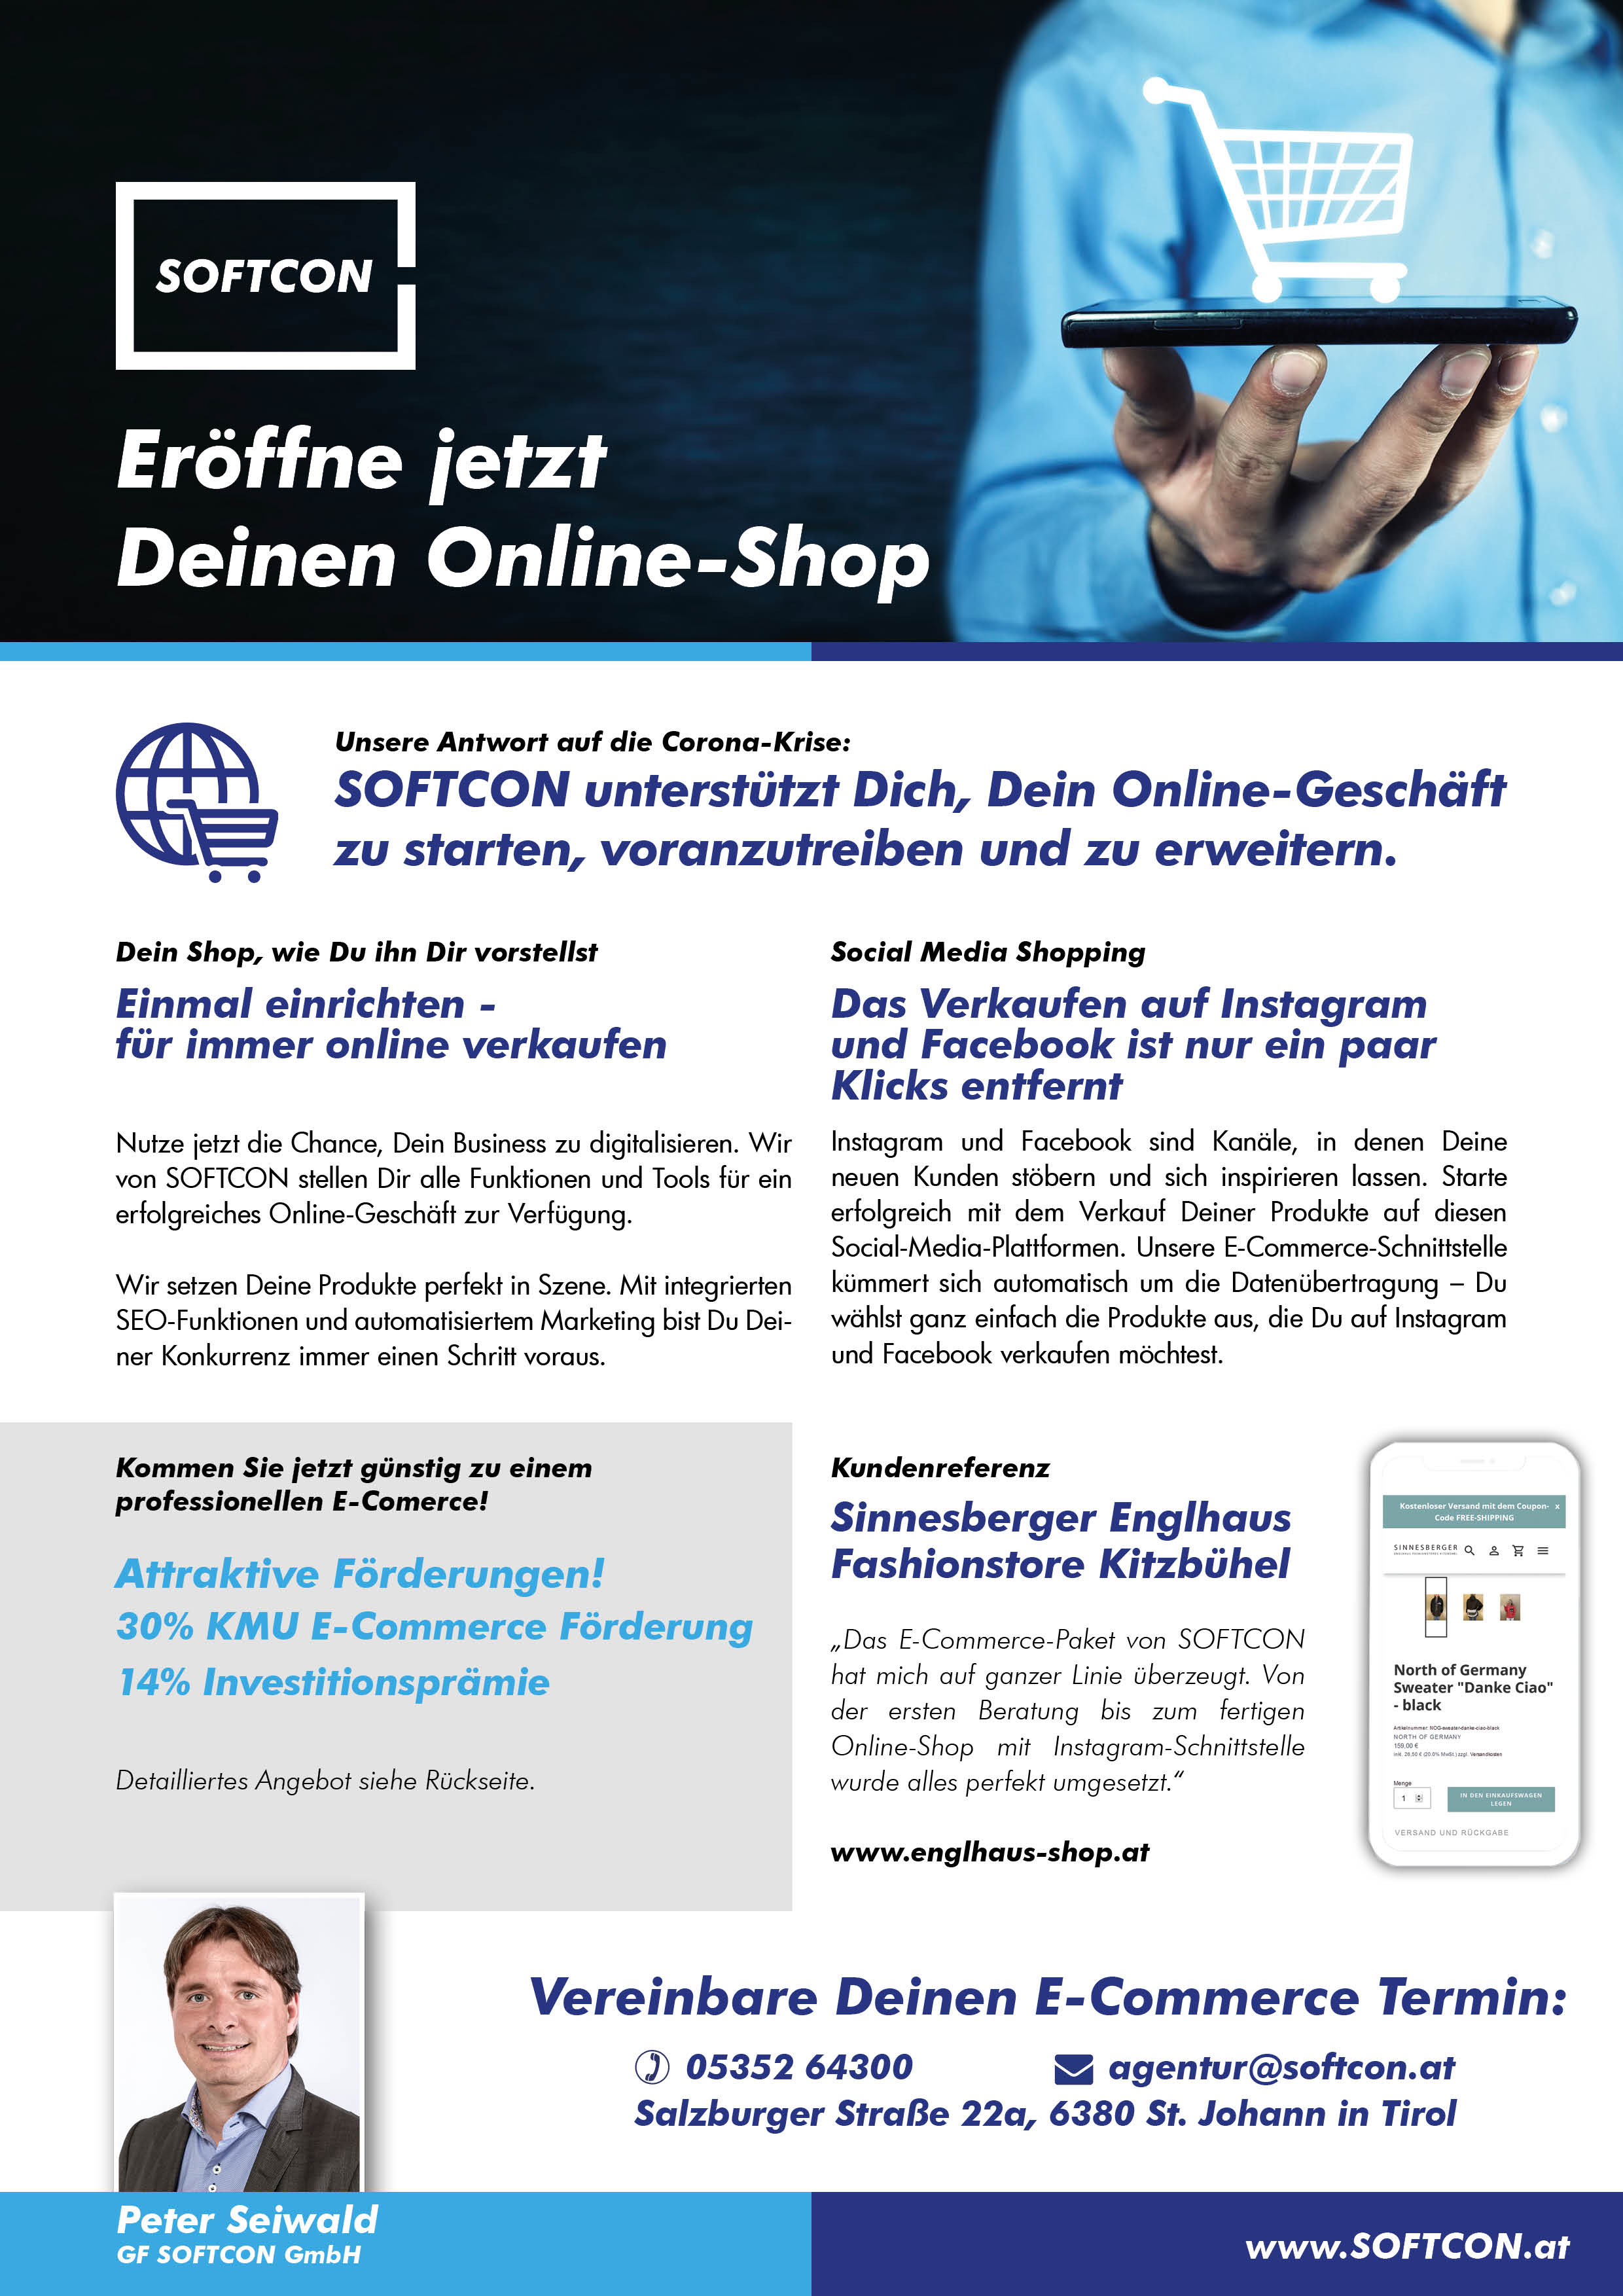 SOFTCON E-Commerce Business Paket